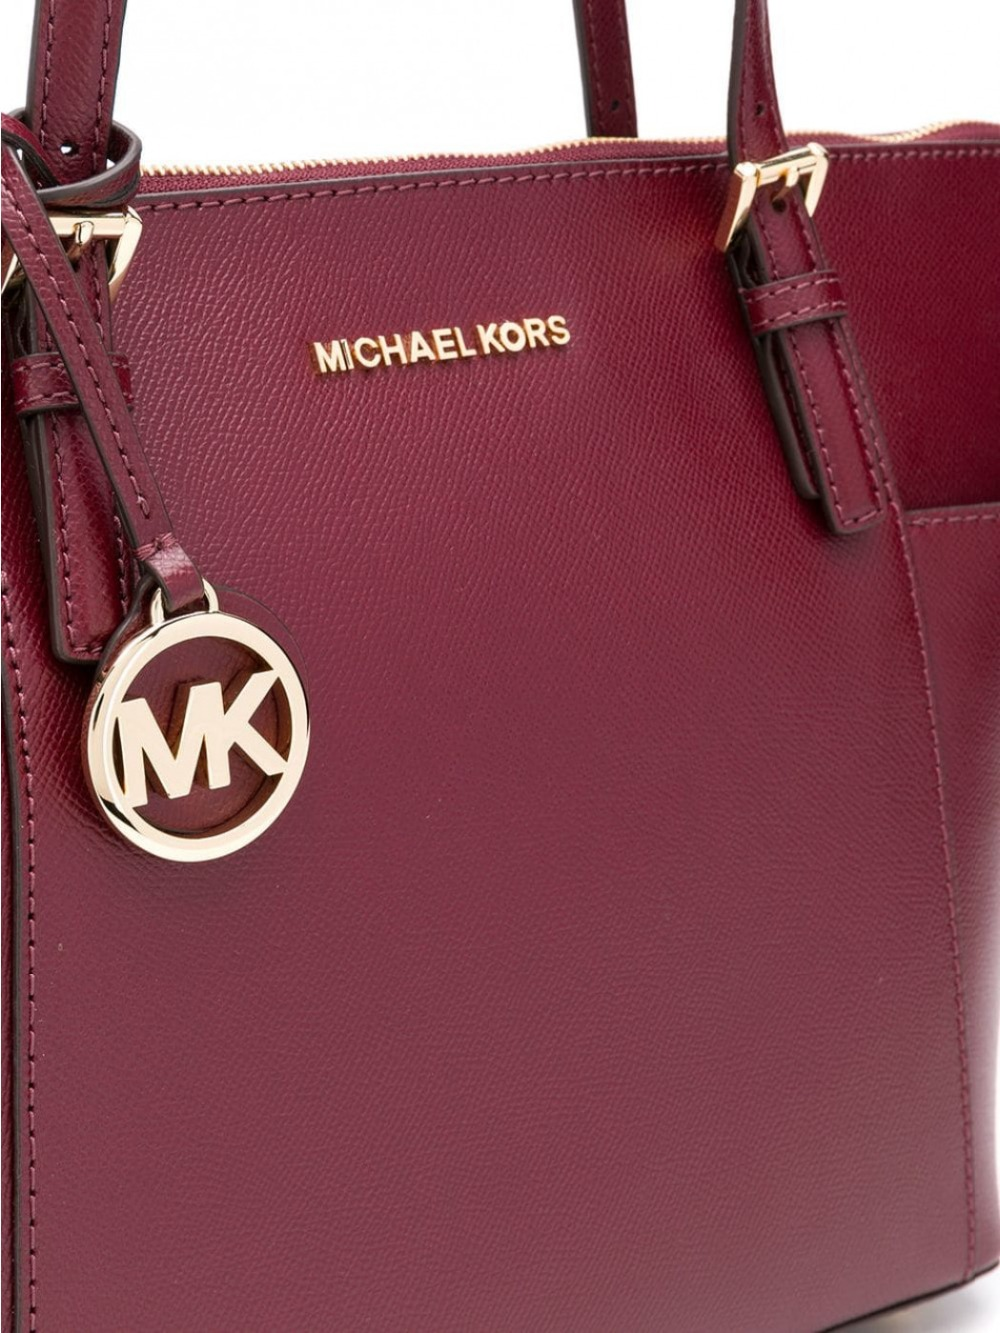 Michael Kors Jet Set Large Crossgrain Leather Top Zip Tote (Oxblood/Gold)  Luxury Handbags For Women Bags Designer by MK-in Top-Handle Bags from  Luggage ...